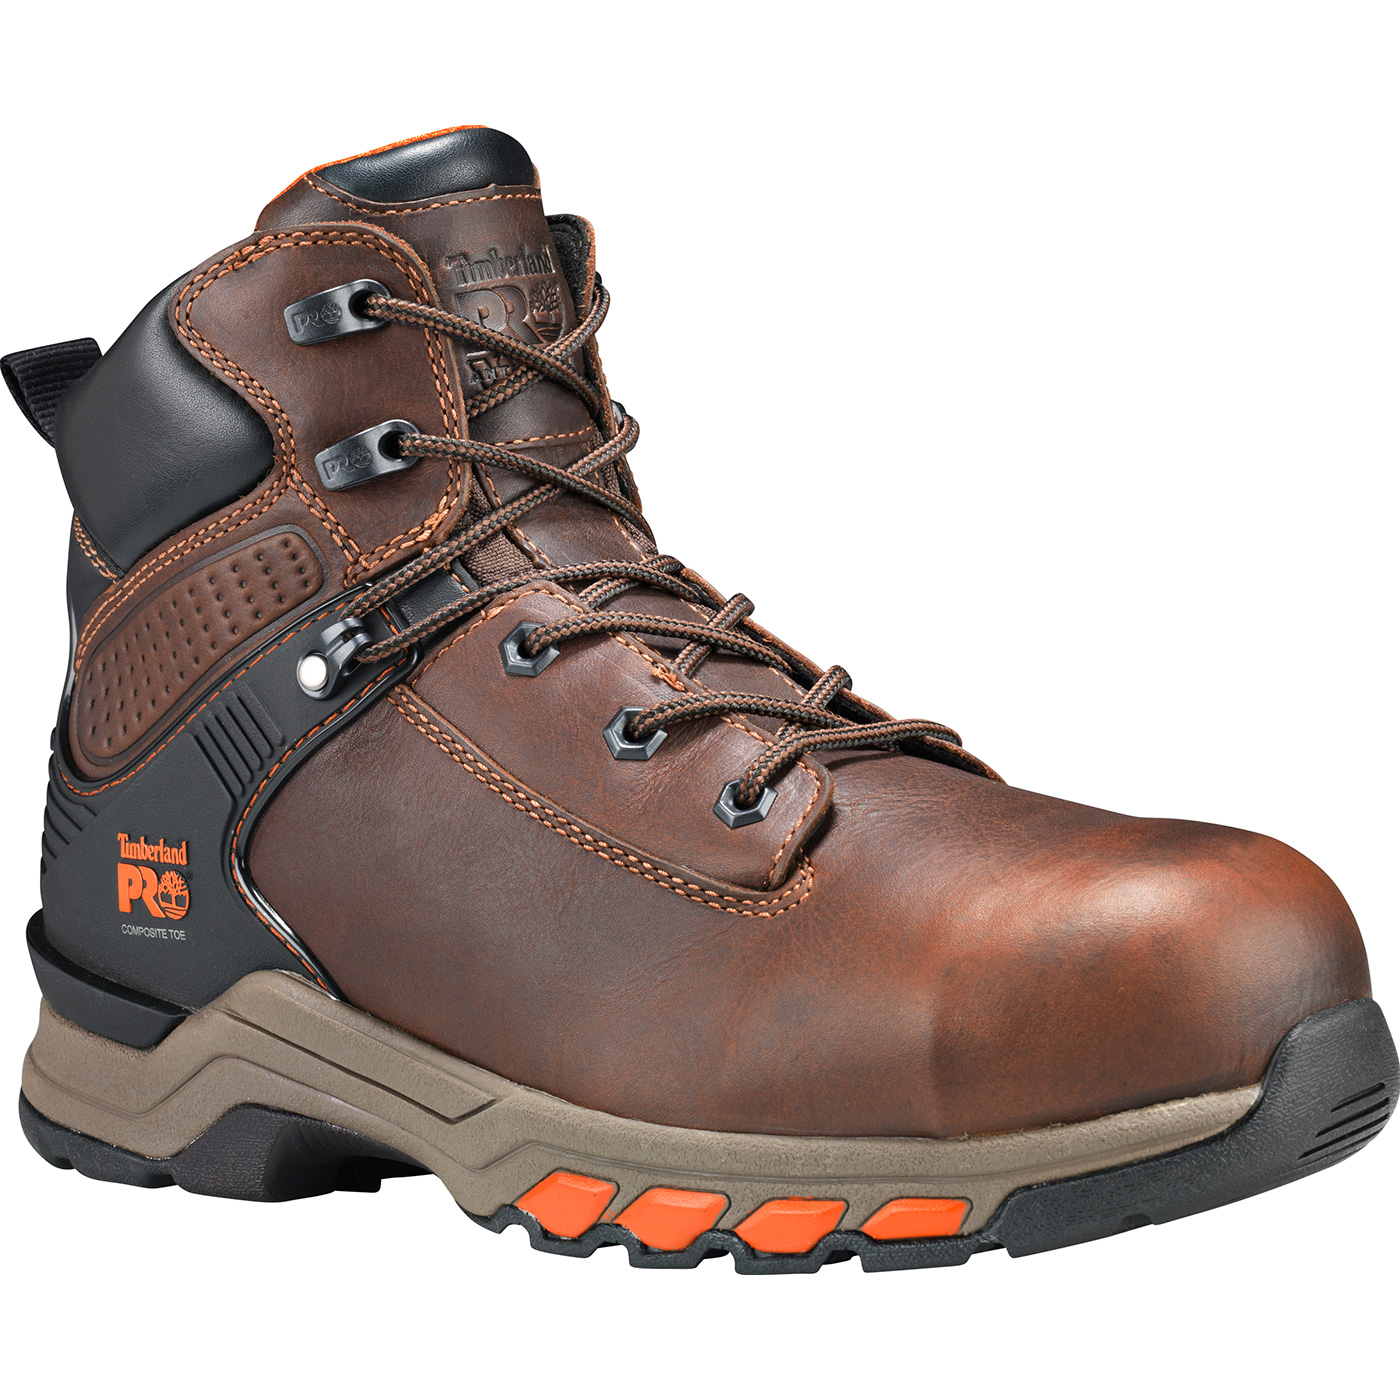 b7e3dfb84f8 Timberland PRO Hypercharge Men's 6 inch Composite Toe Electrical Hazard  Work Hiker